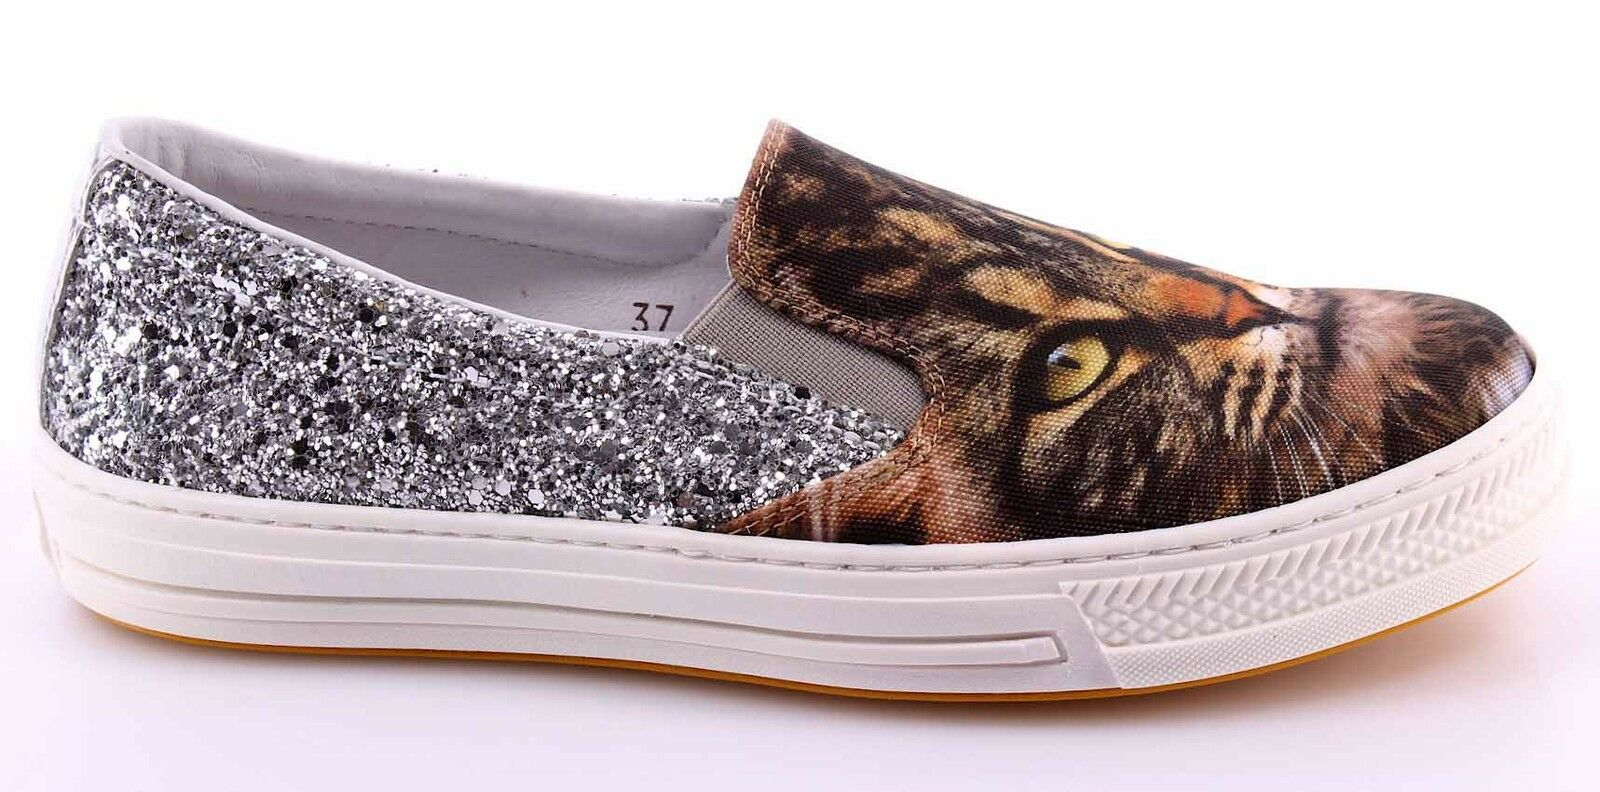 Zapatos promocionales para hombres y mujeres Scarpe Sneakers Slip On Donna CHANGE! GattinoW Raso Bianco Glitter Argento Italy